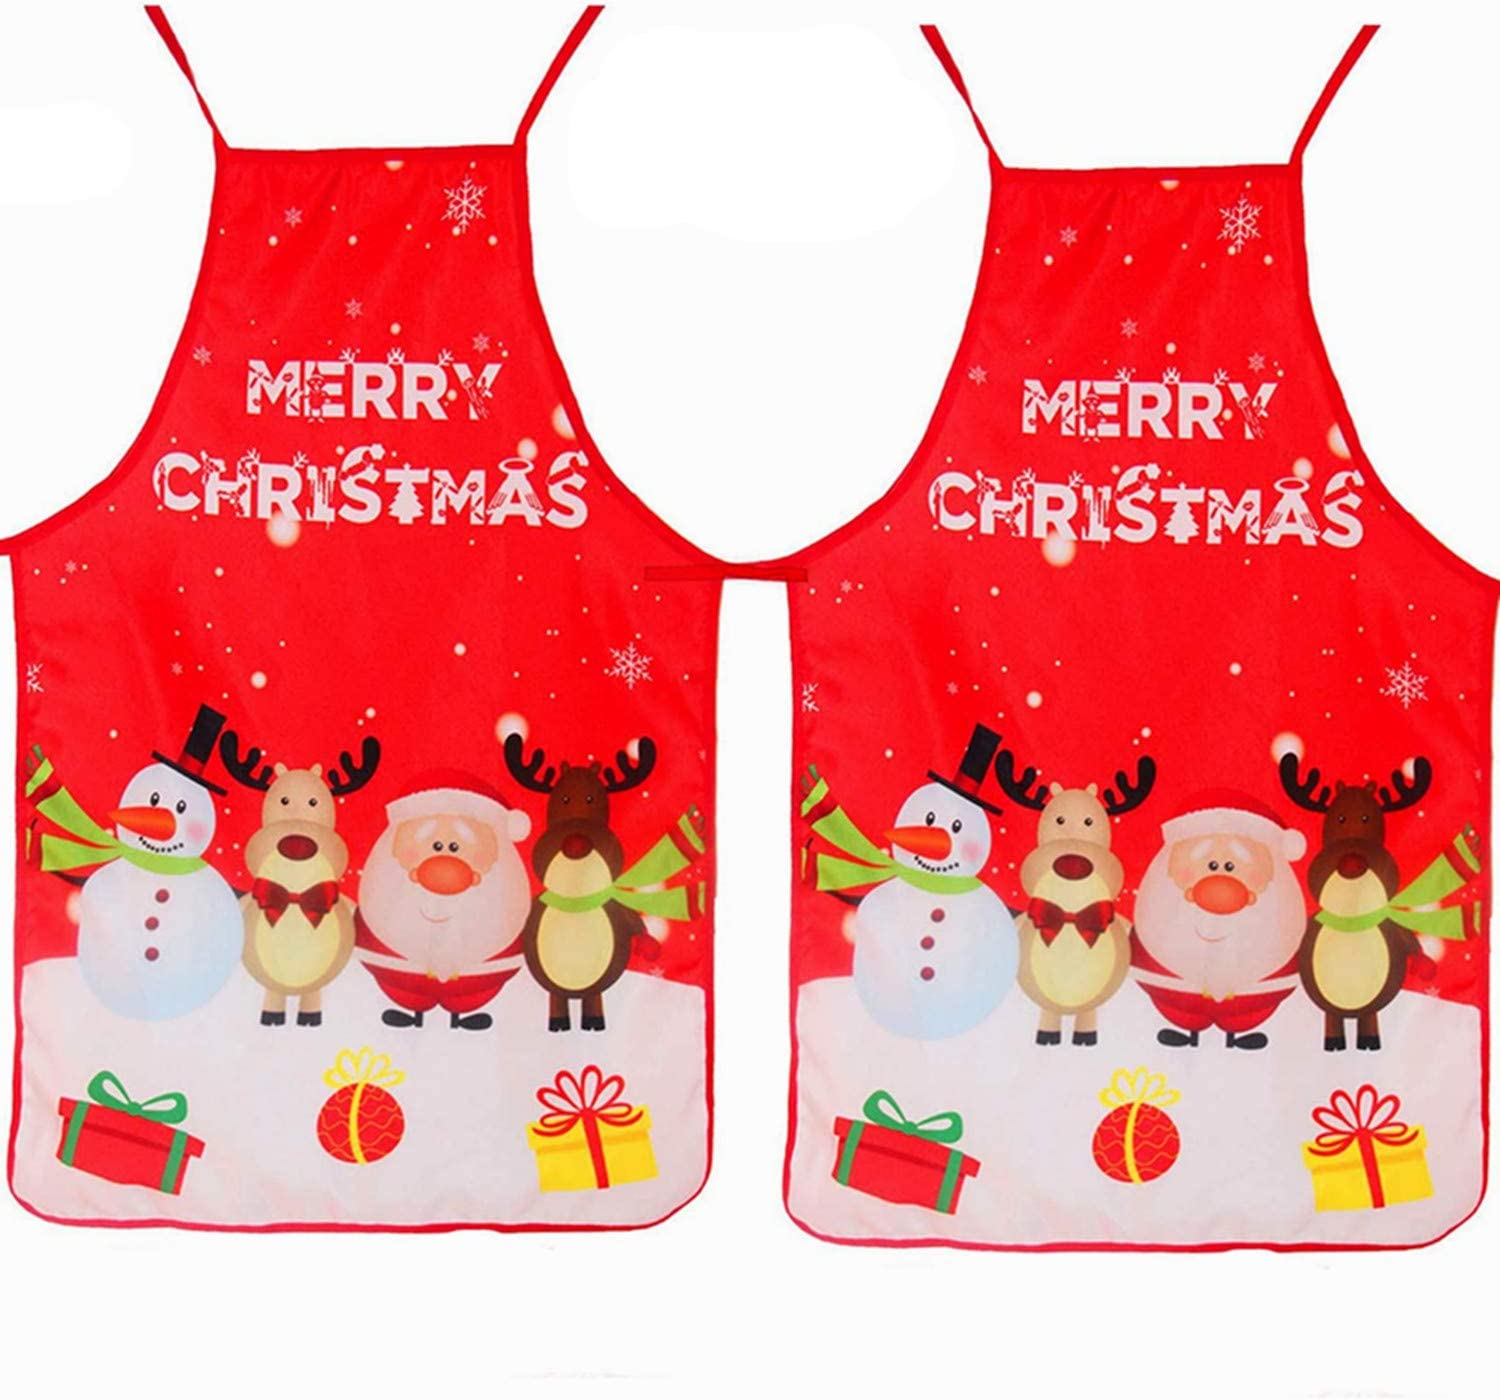 Sweetfamily 2 Pcs Christmas Apron Decorated Clothes for Hostess Christmas Dinner Cooking Kitchen Barbecue Baking Crafting Apron